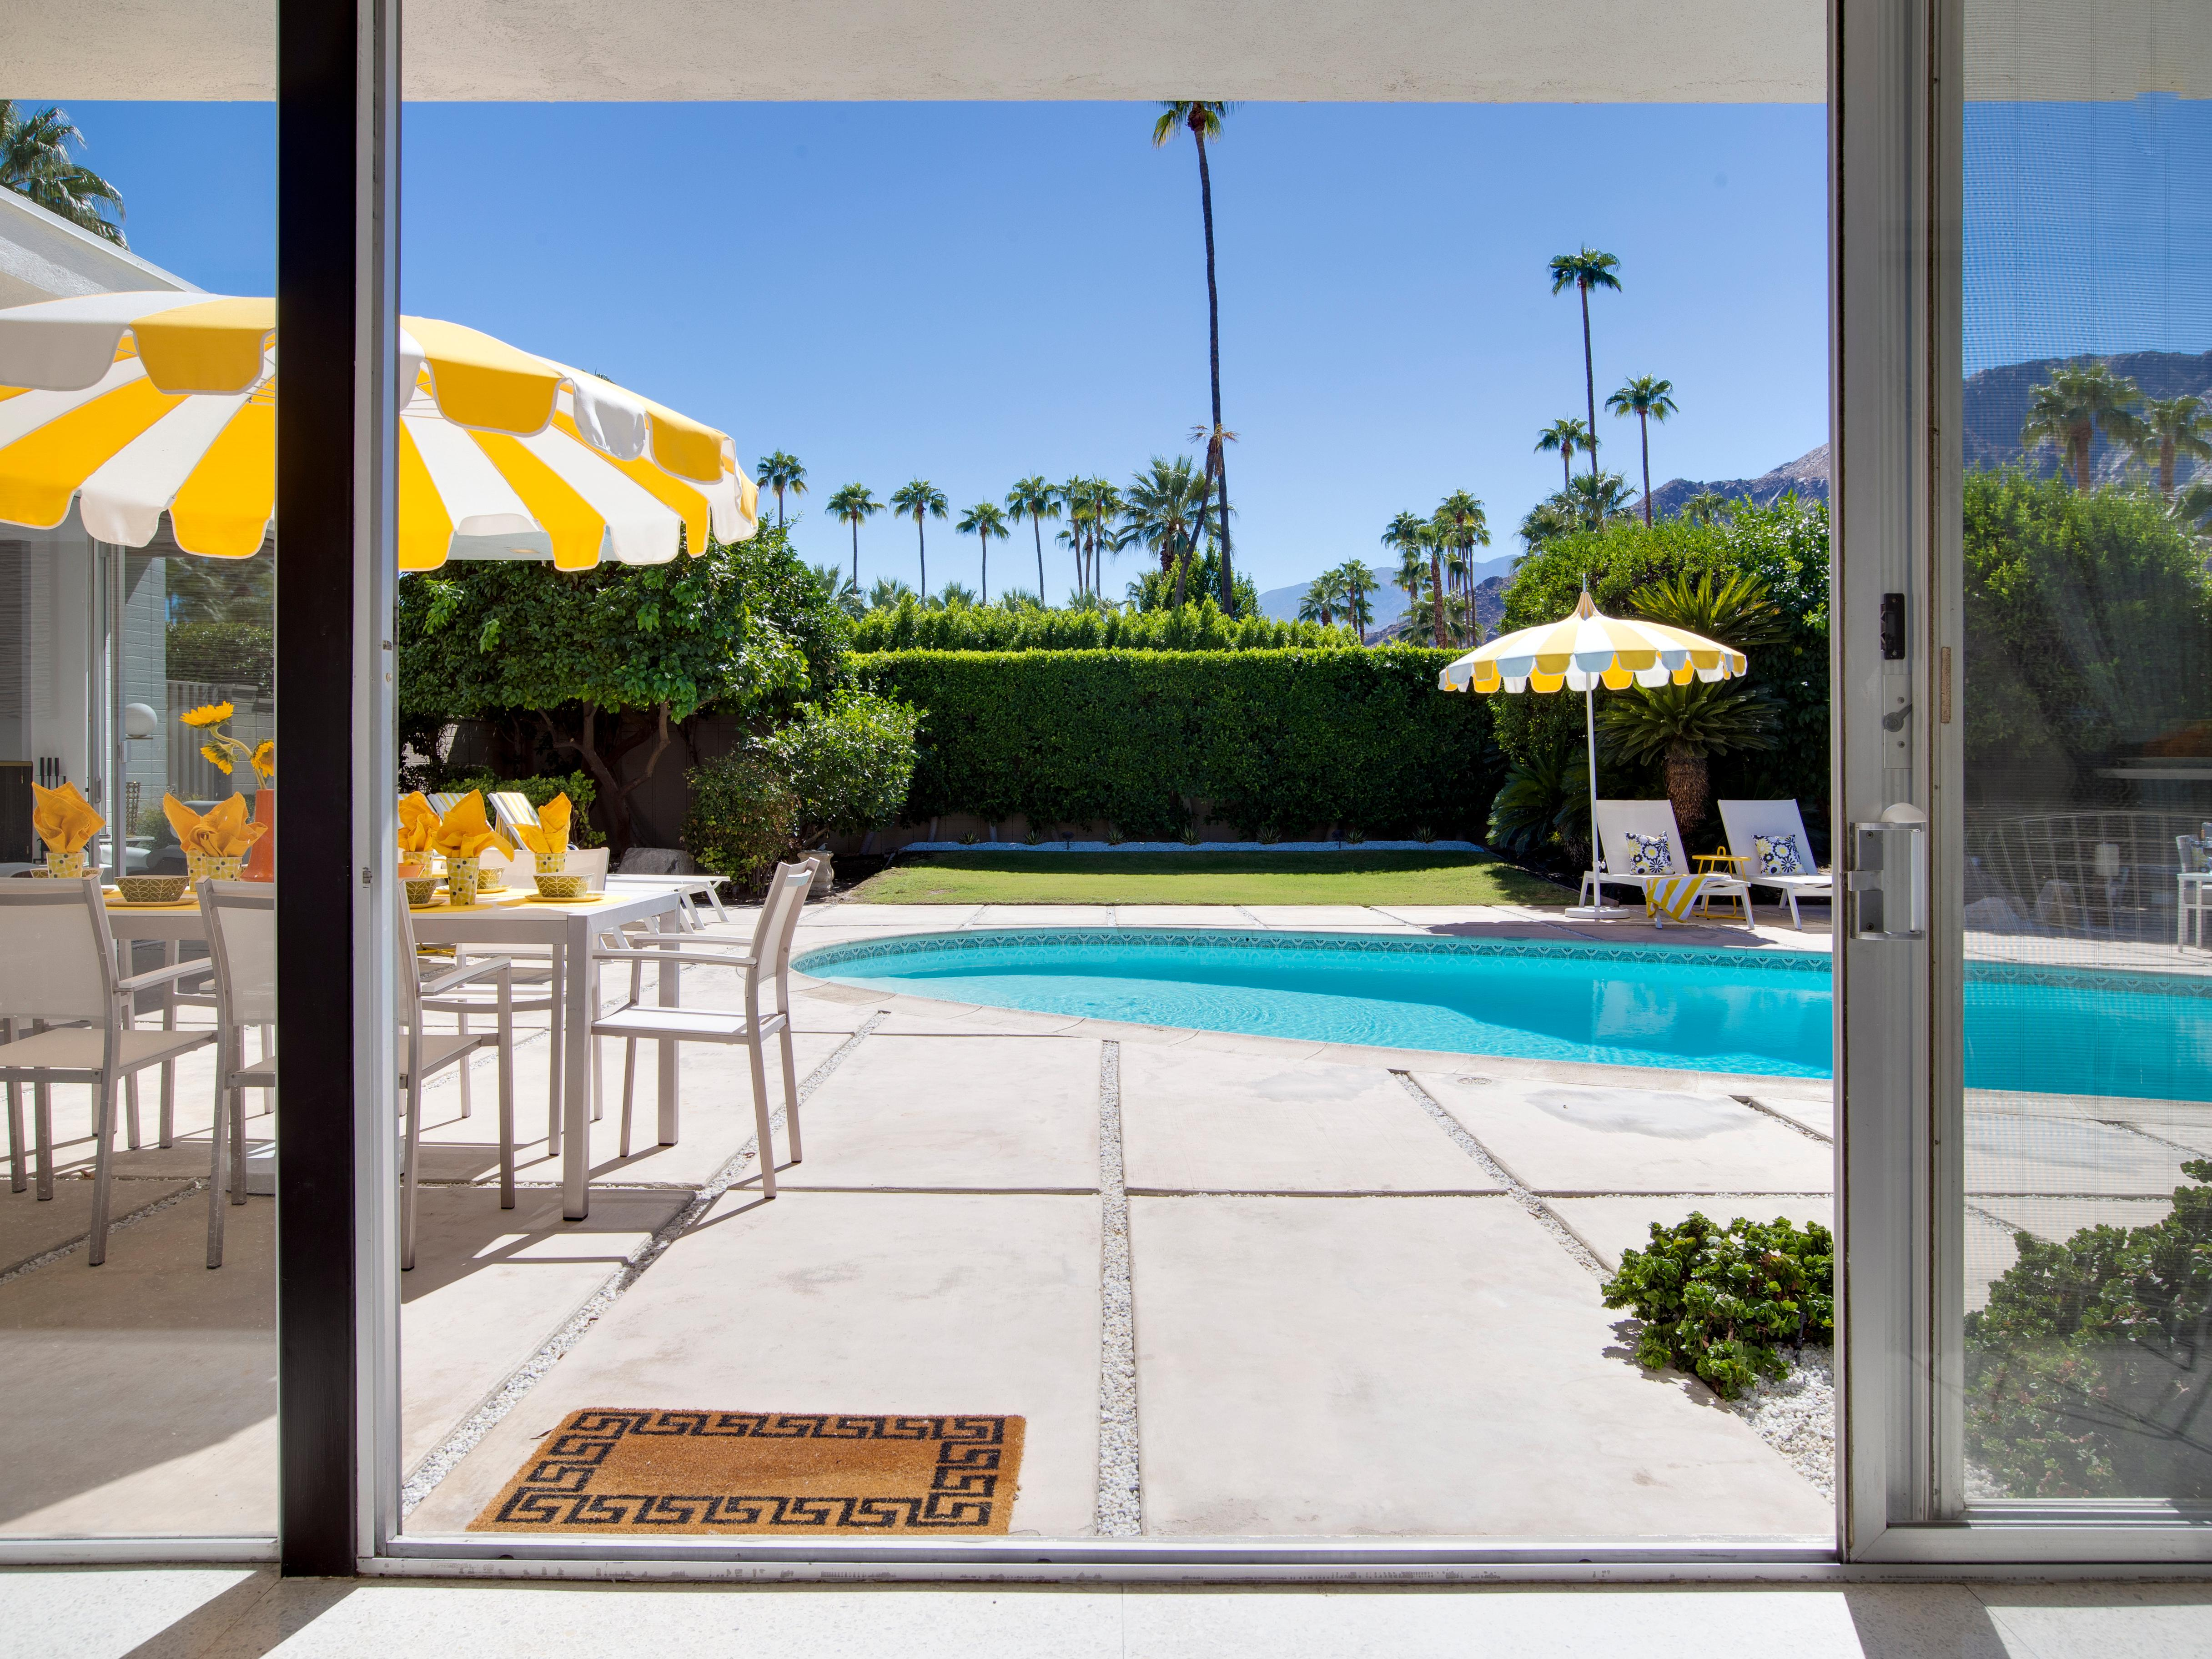 Property Image 2 - Perfectly Preserved Home Palm Springs with Sunny Decor